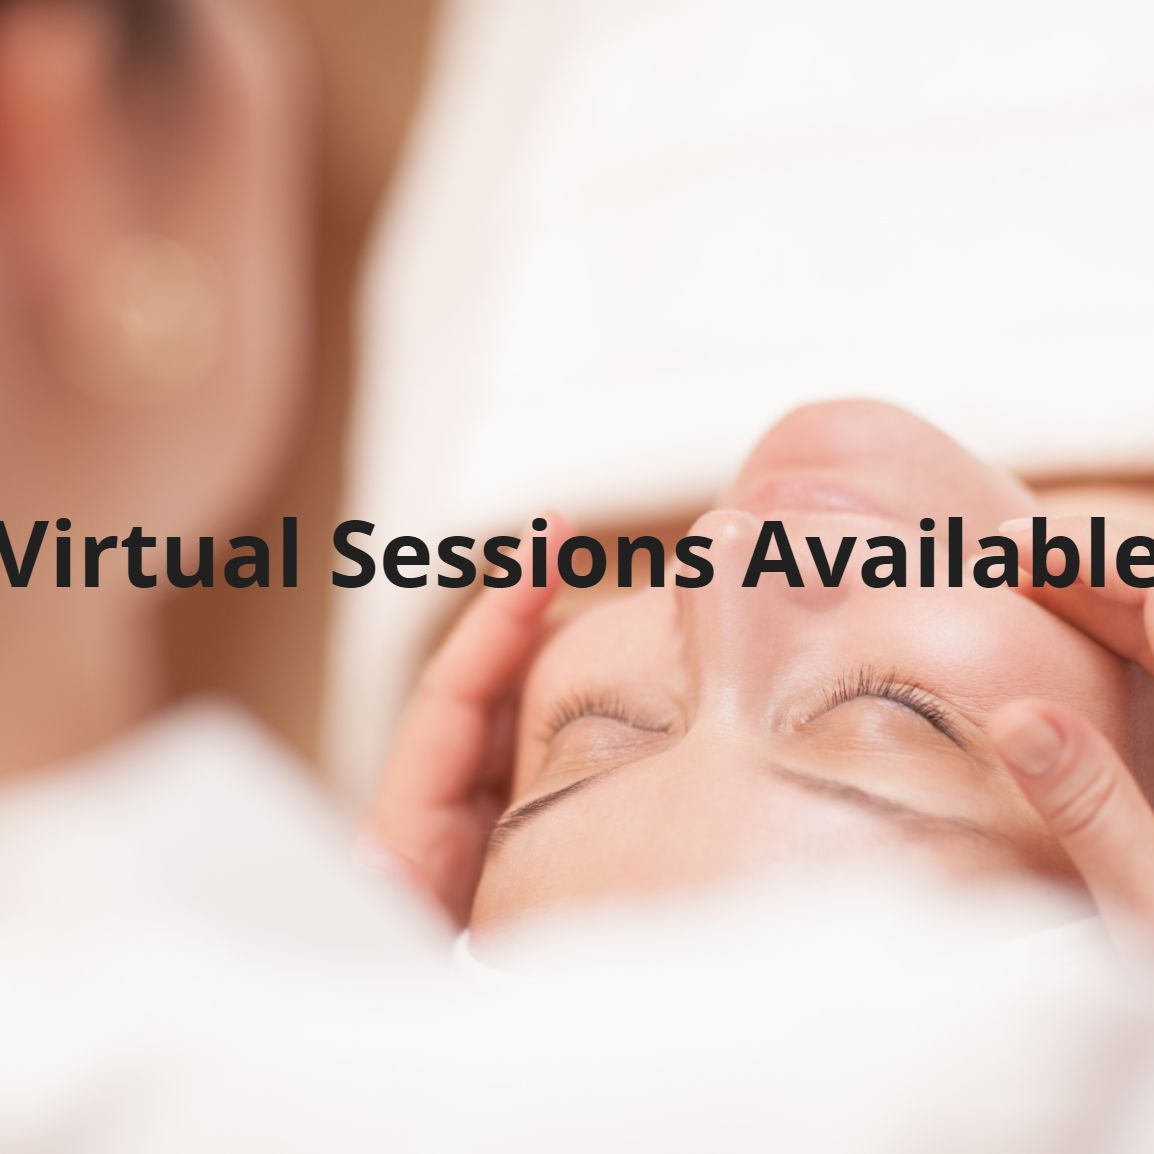 virtual skin consultations, virtual skin analysis